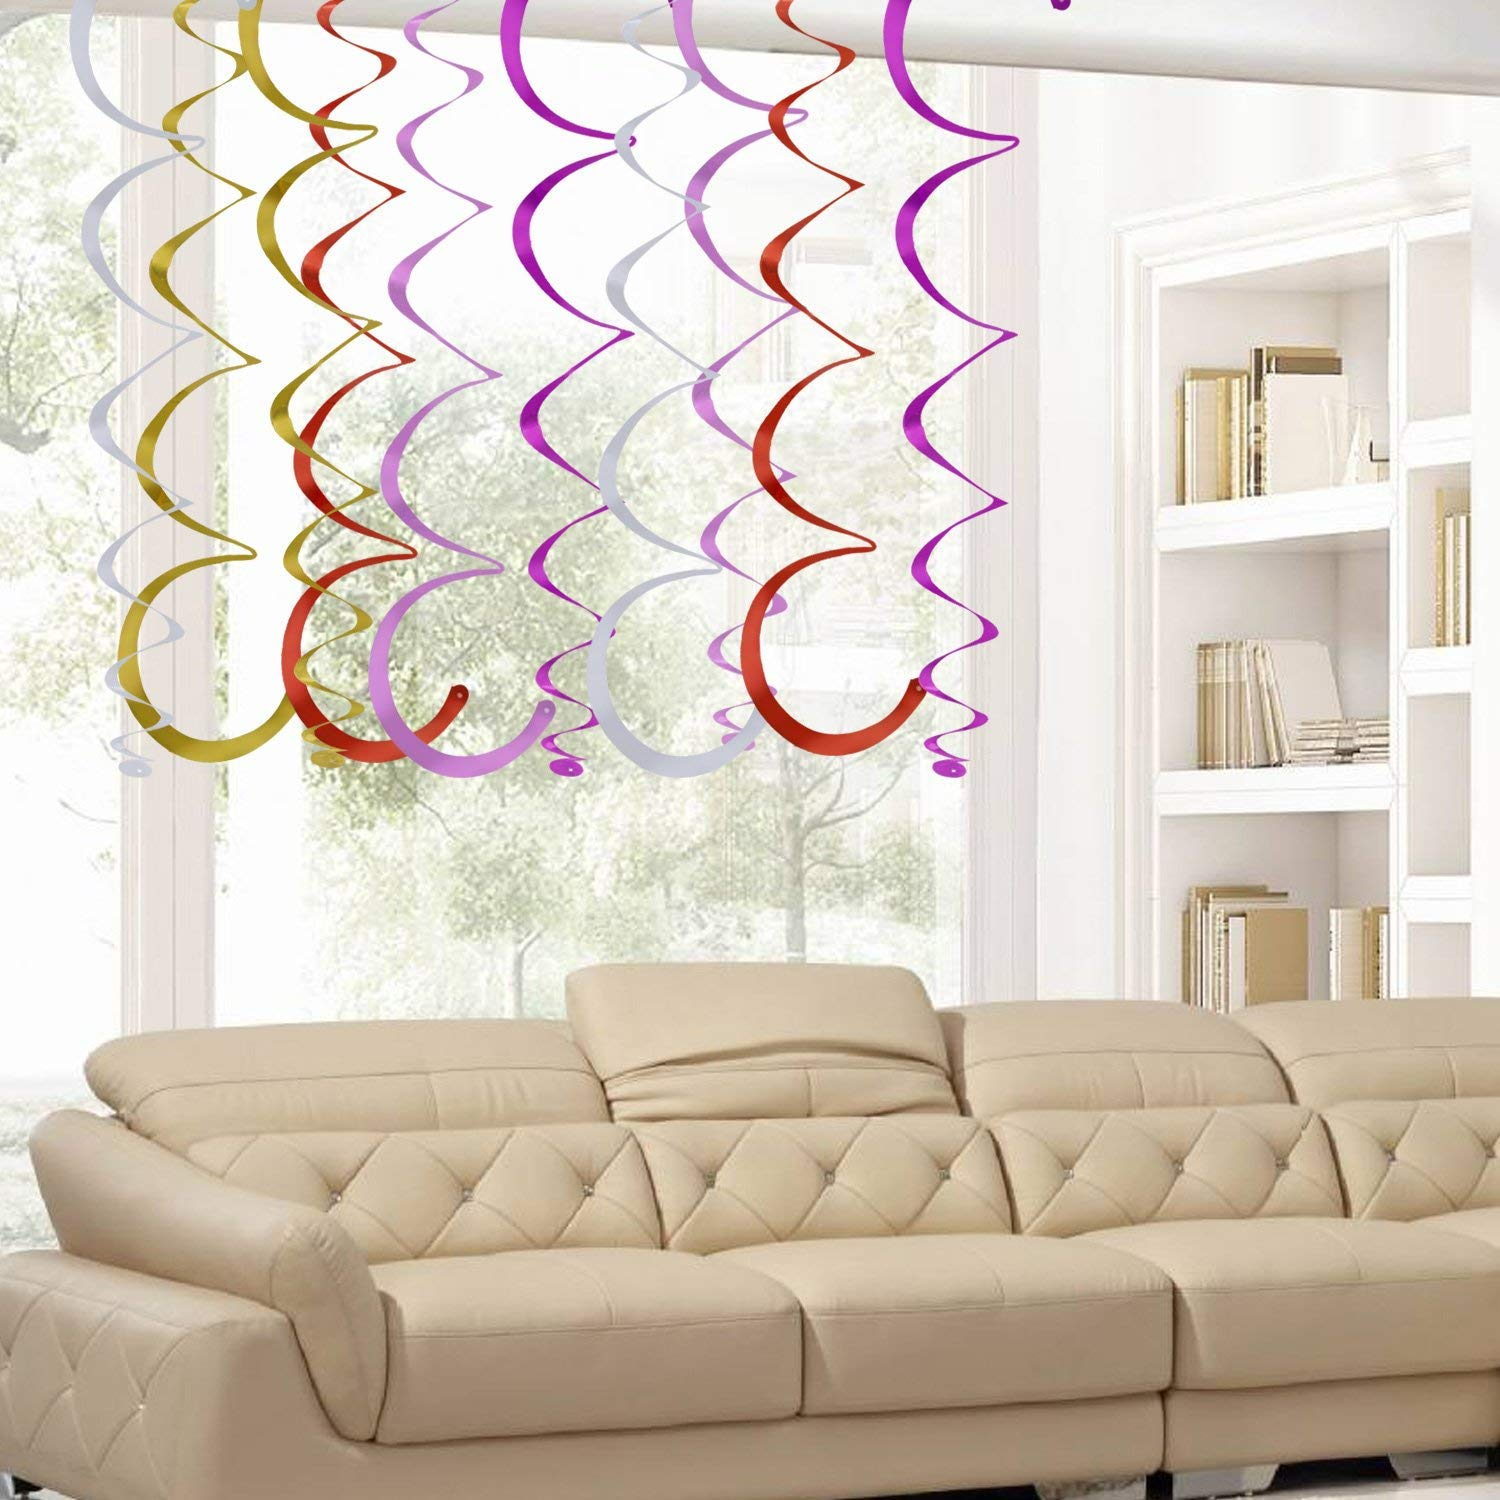 BTSD-home Hanging Swirl Decorations for Birthdays, Weddings, Valentines, Anniversaries etc - Multi Coloured, Gold, Silver, Pink, Red and Purple - Each Pack Contains 30 Swirls